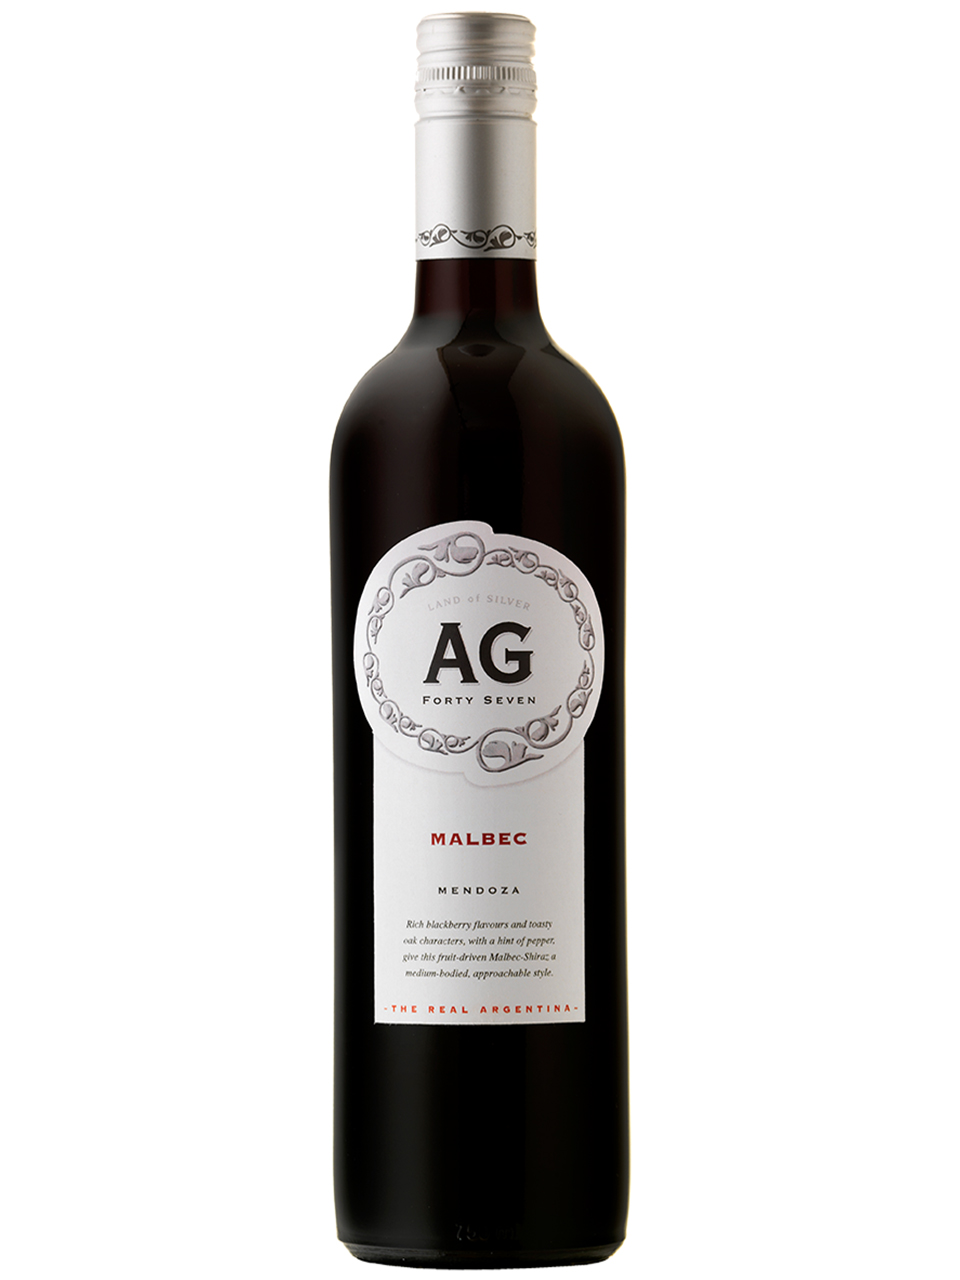 AG Forty-Seven Malbec